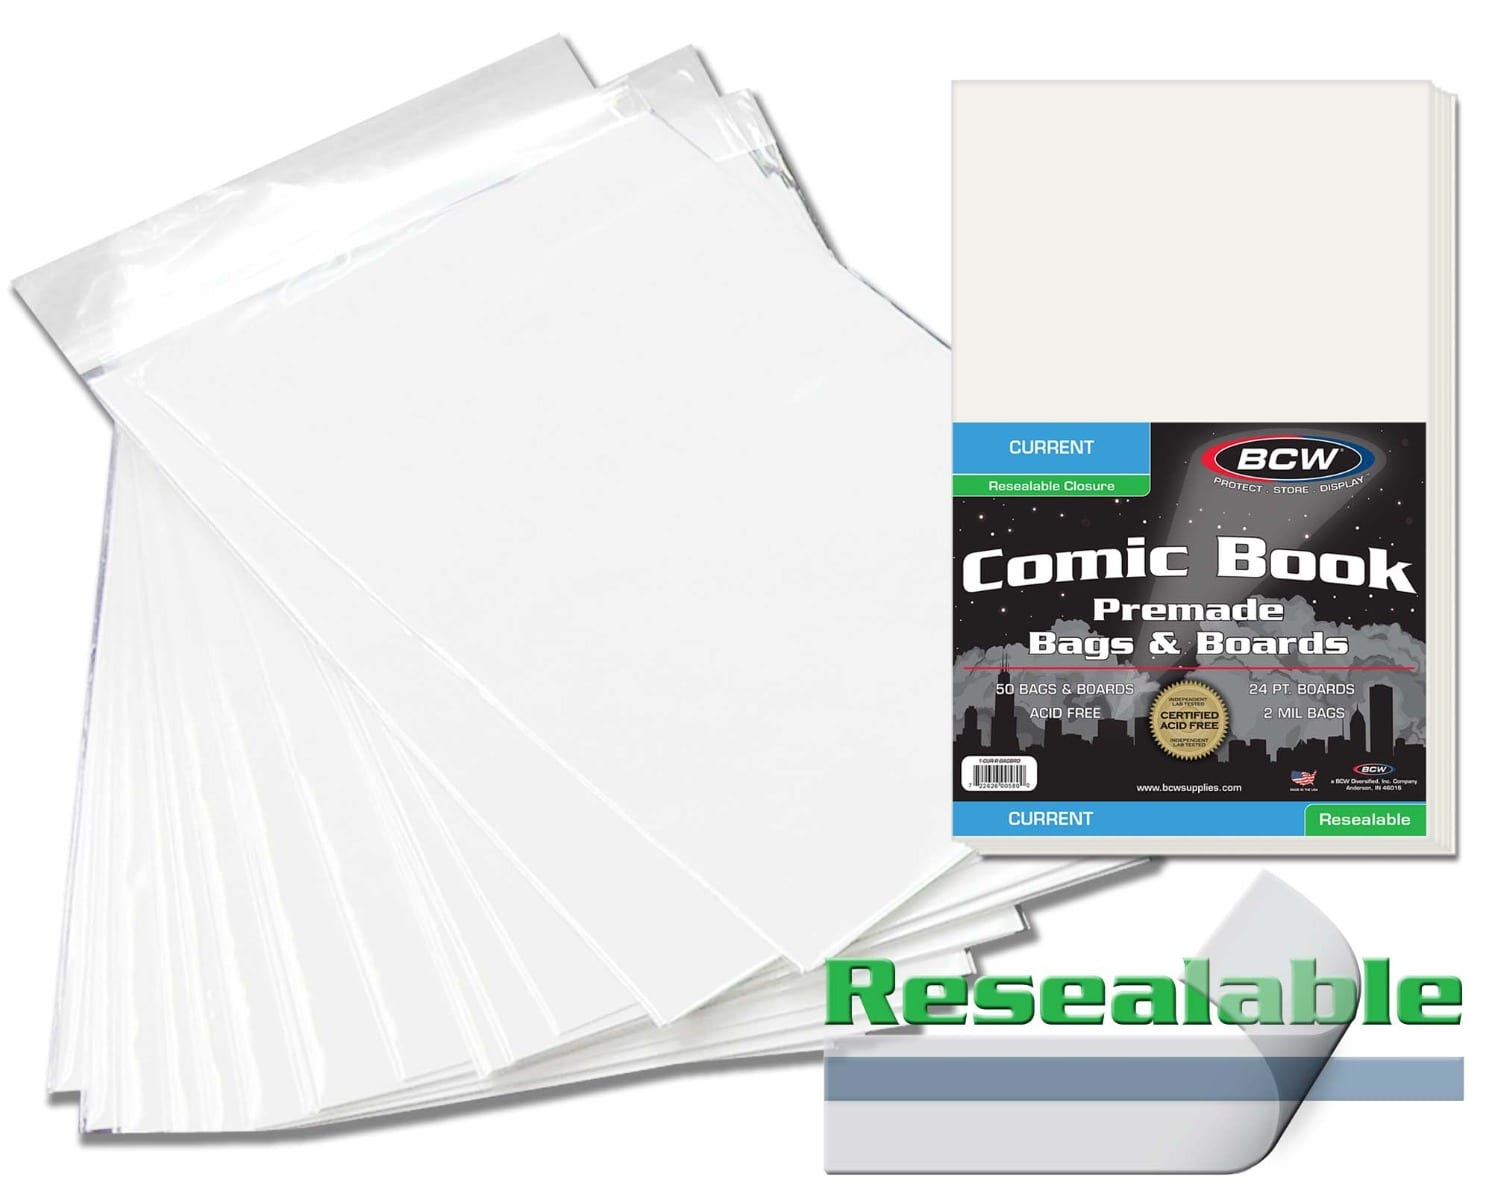 100 MODERN COMIC BOOK SIZE BAGS AND BACKING BOARDS BCW RESEALABLE CURRENT